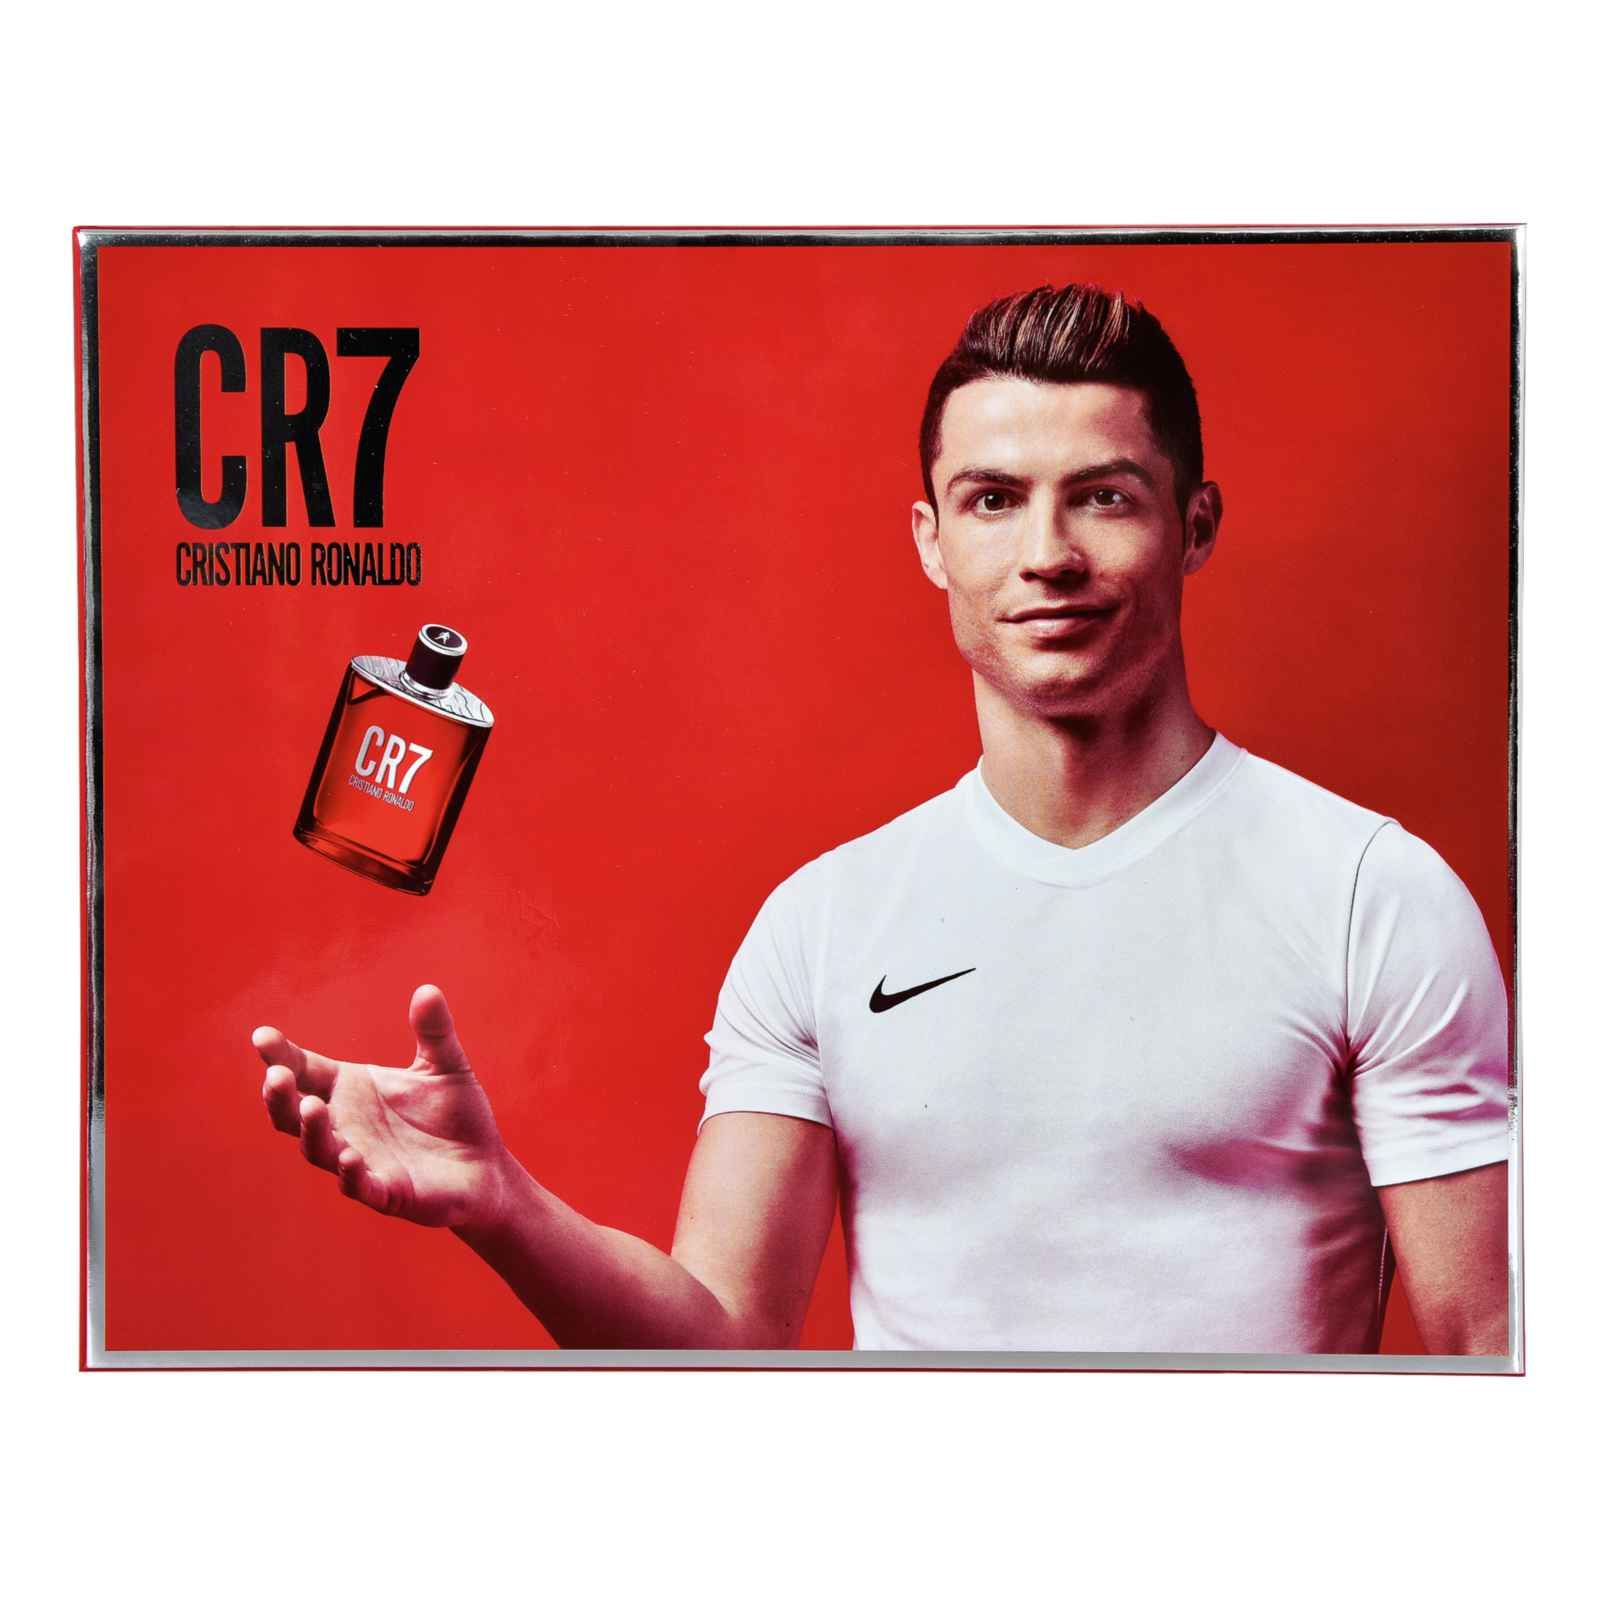 Cristiano Ronaldo Cr7 Homme Duftset 2 Teilig Otto S Onlineshop